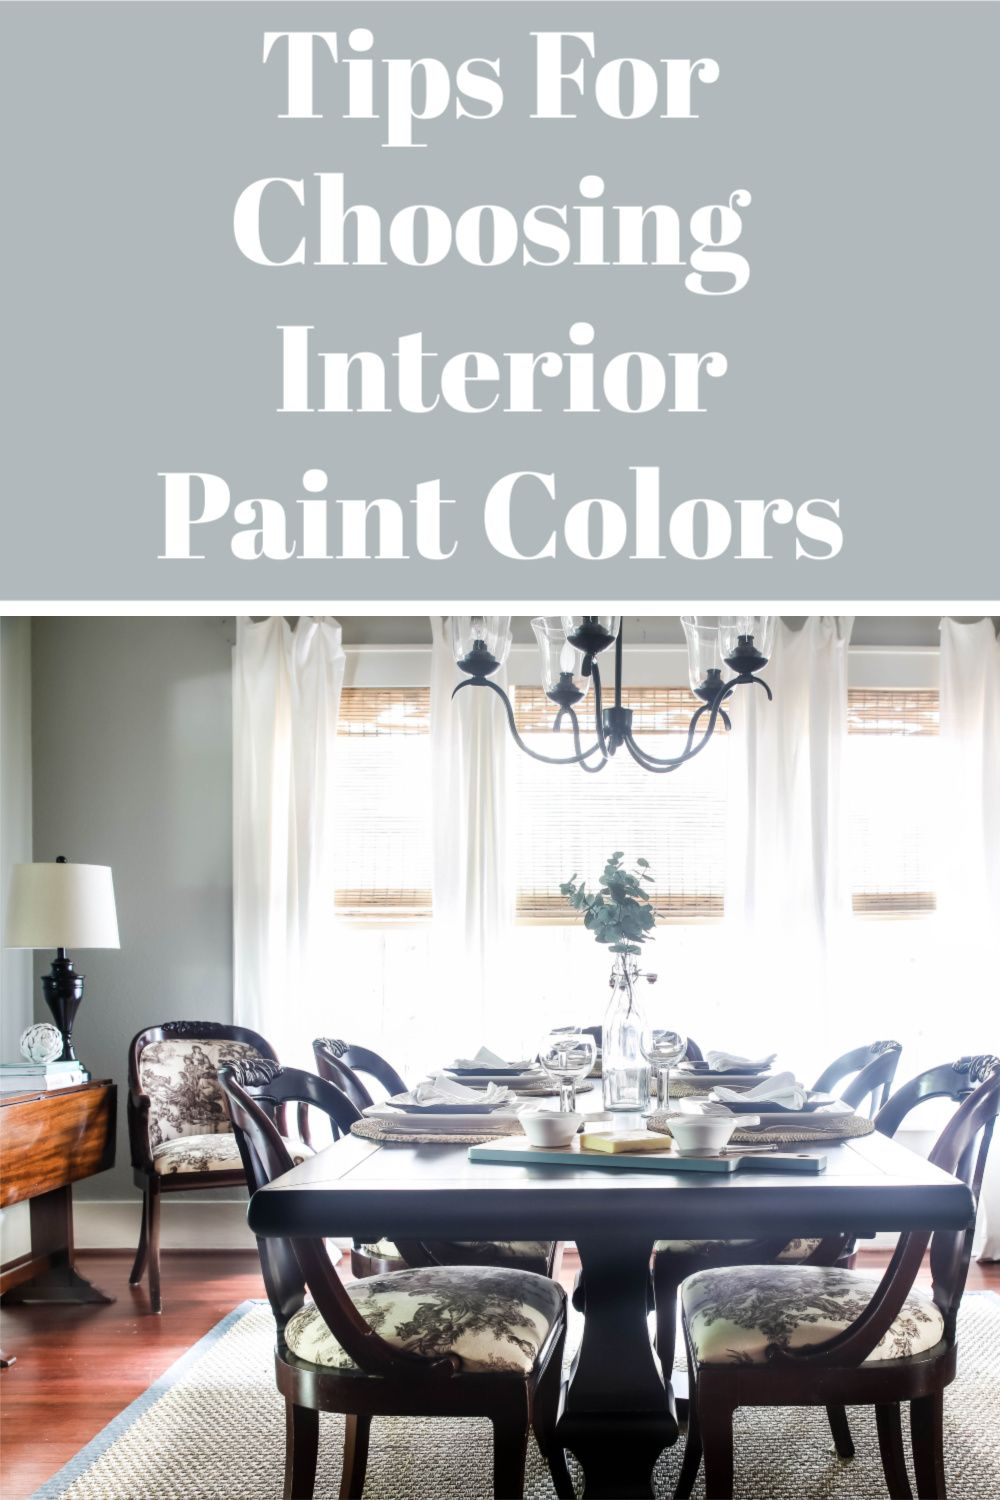 tips for choosing interior paint colors with images on choosing paint colors interior id=82629